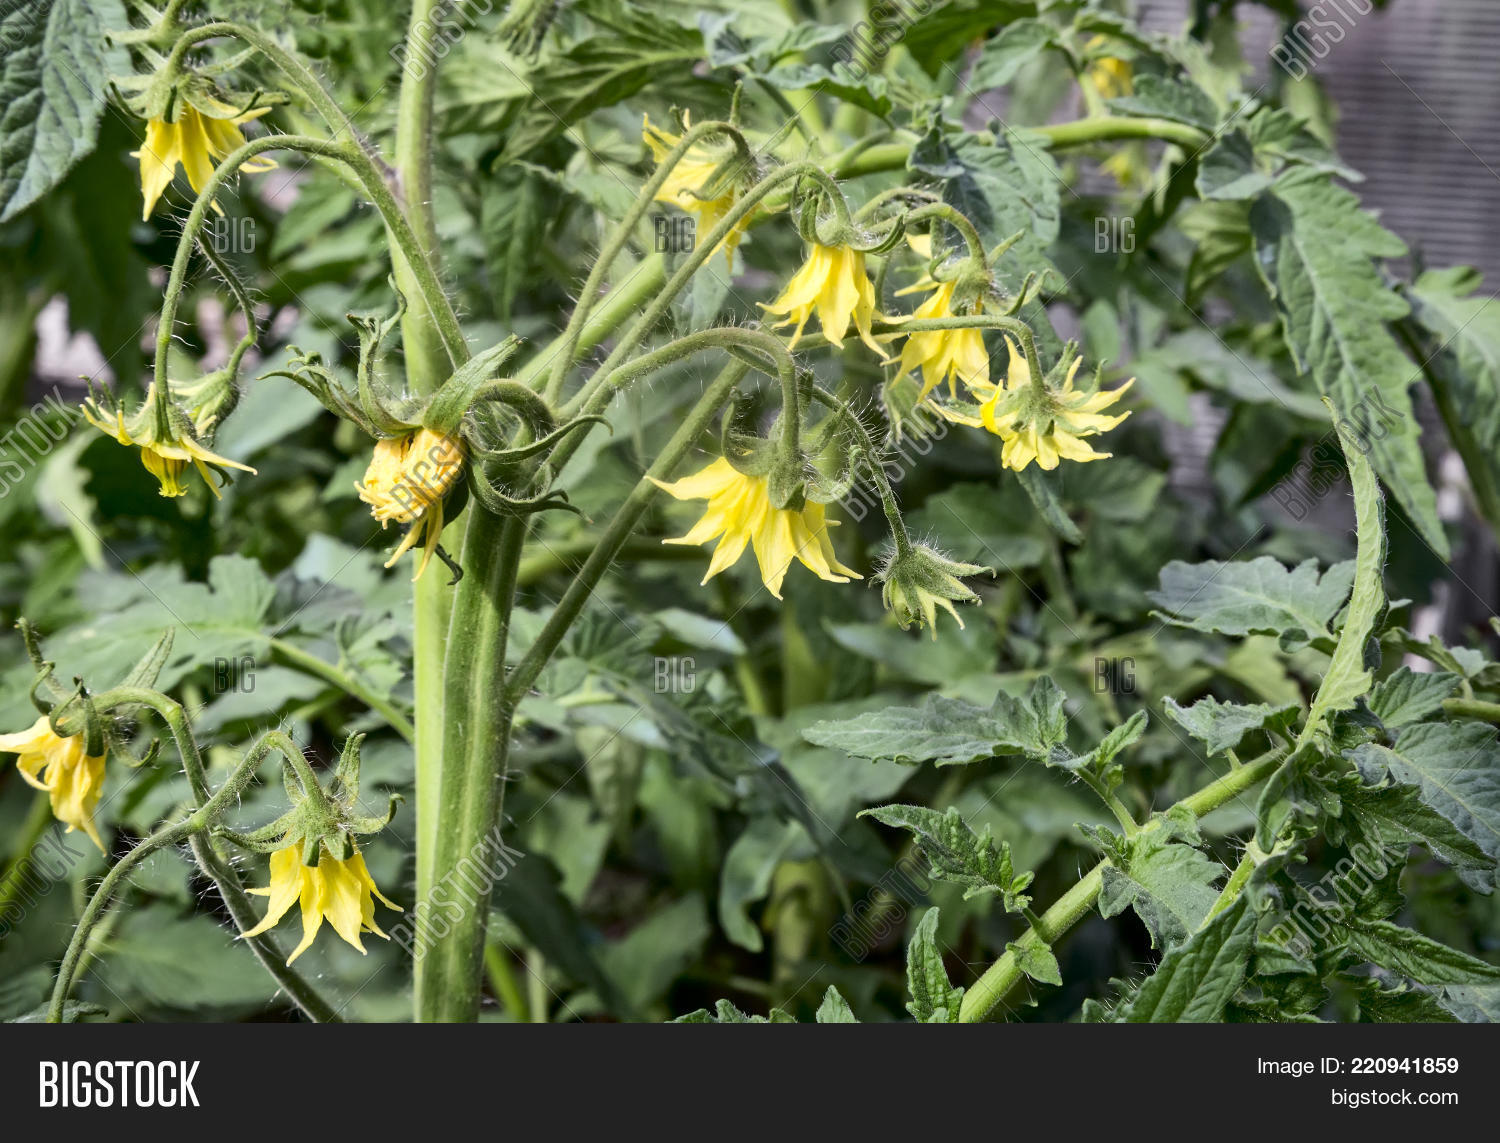 Greenhouse Bloom Plant Image Photo Free Trial Bigstock